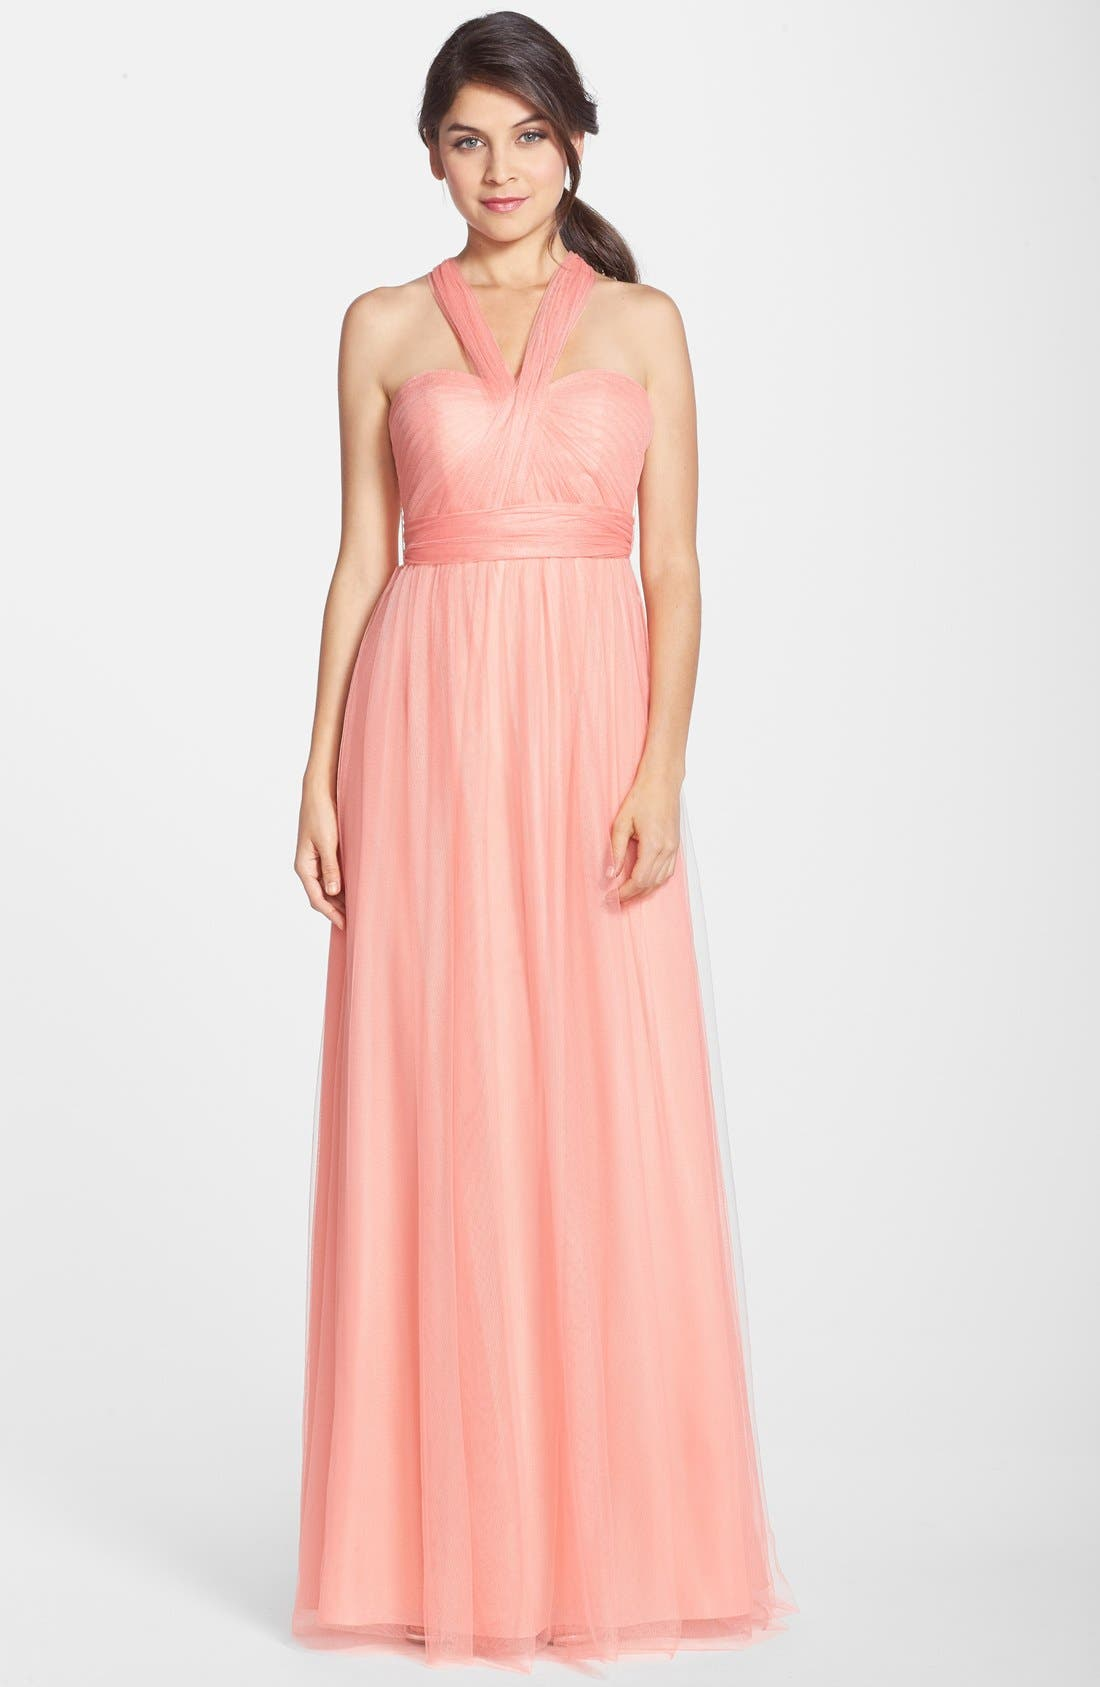 Annabelle Convertible Tulle Column Dress,                             Alternate thumbnail 62, color,